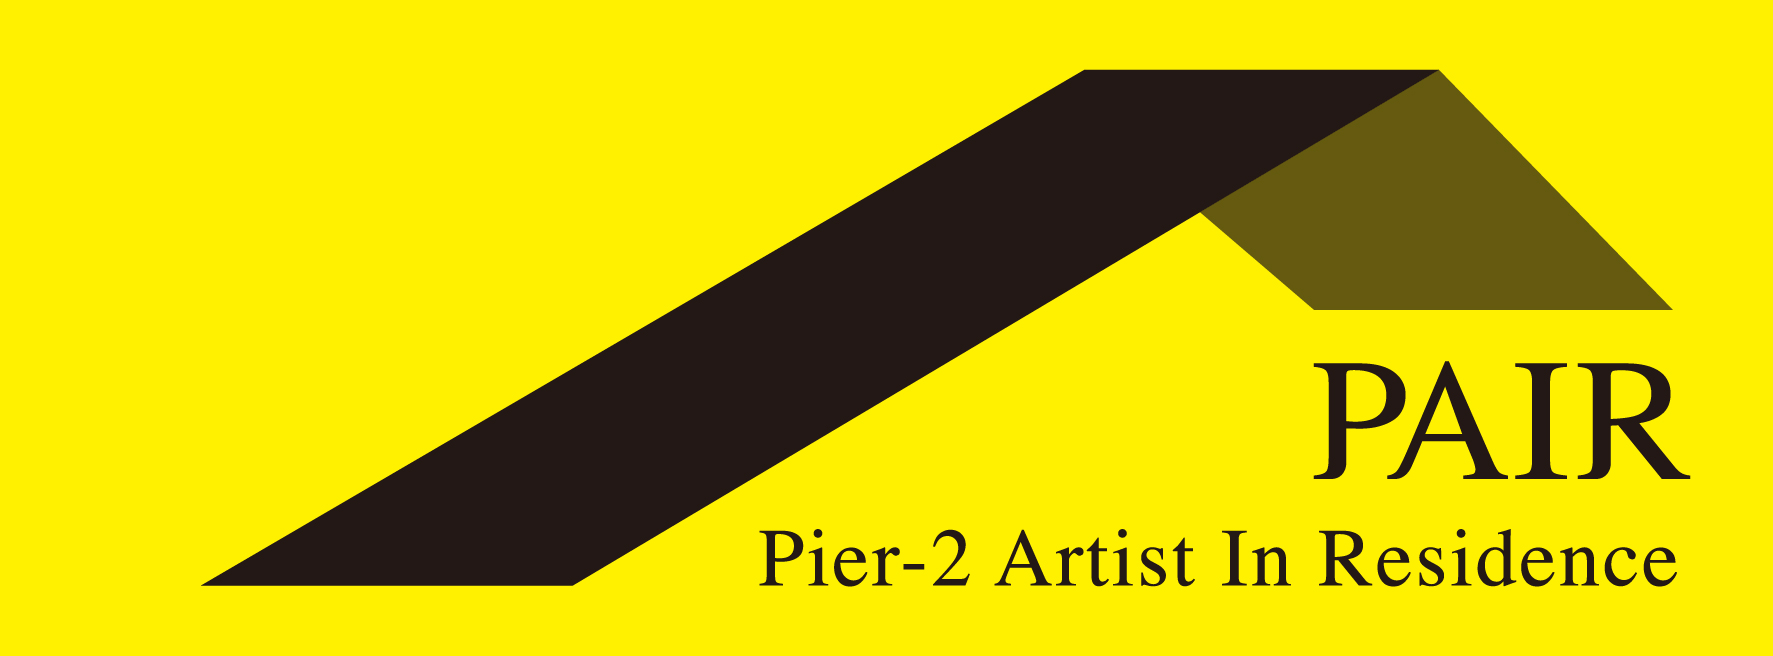 Pier-2 Art Center Artist-in-Residence Program 2016 PHASE I OPEN CALL (Deadline: Jan 17)